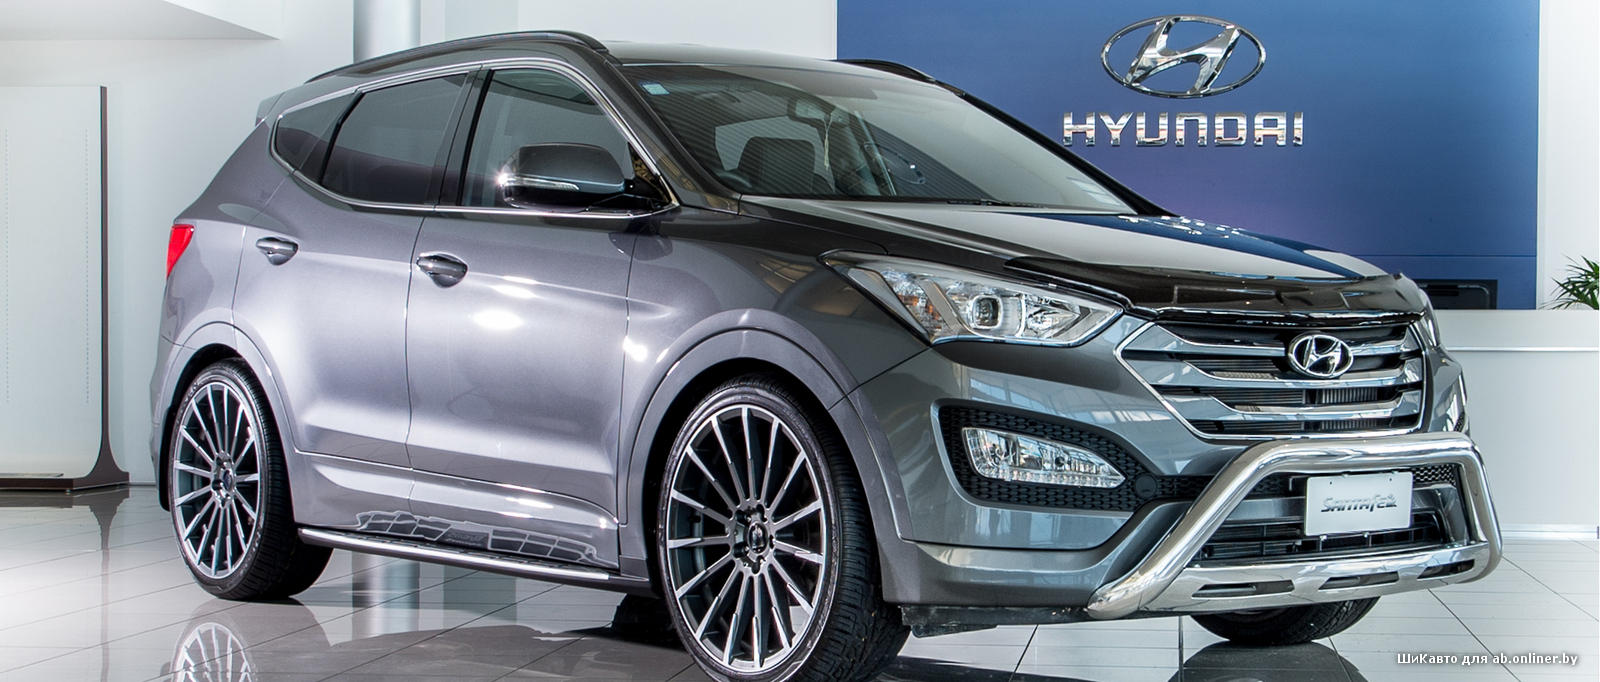 Hyundai Santa Fe 2.2CRDI 6AT AWD